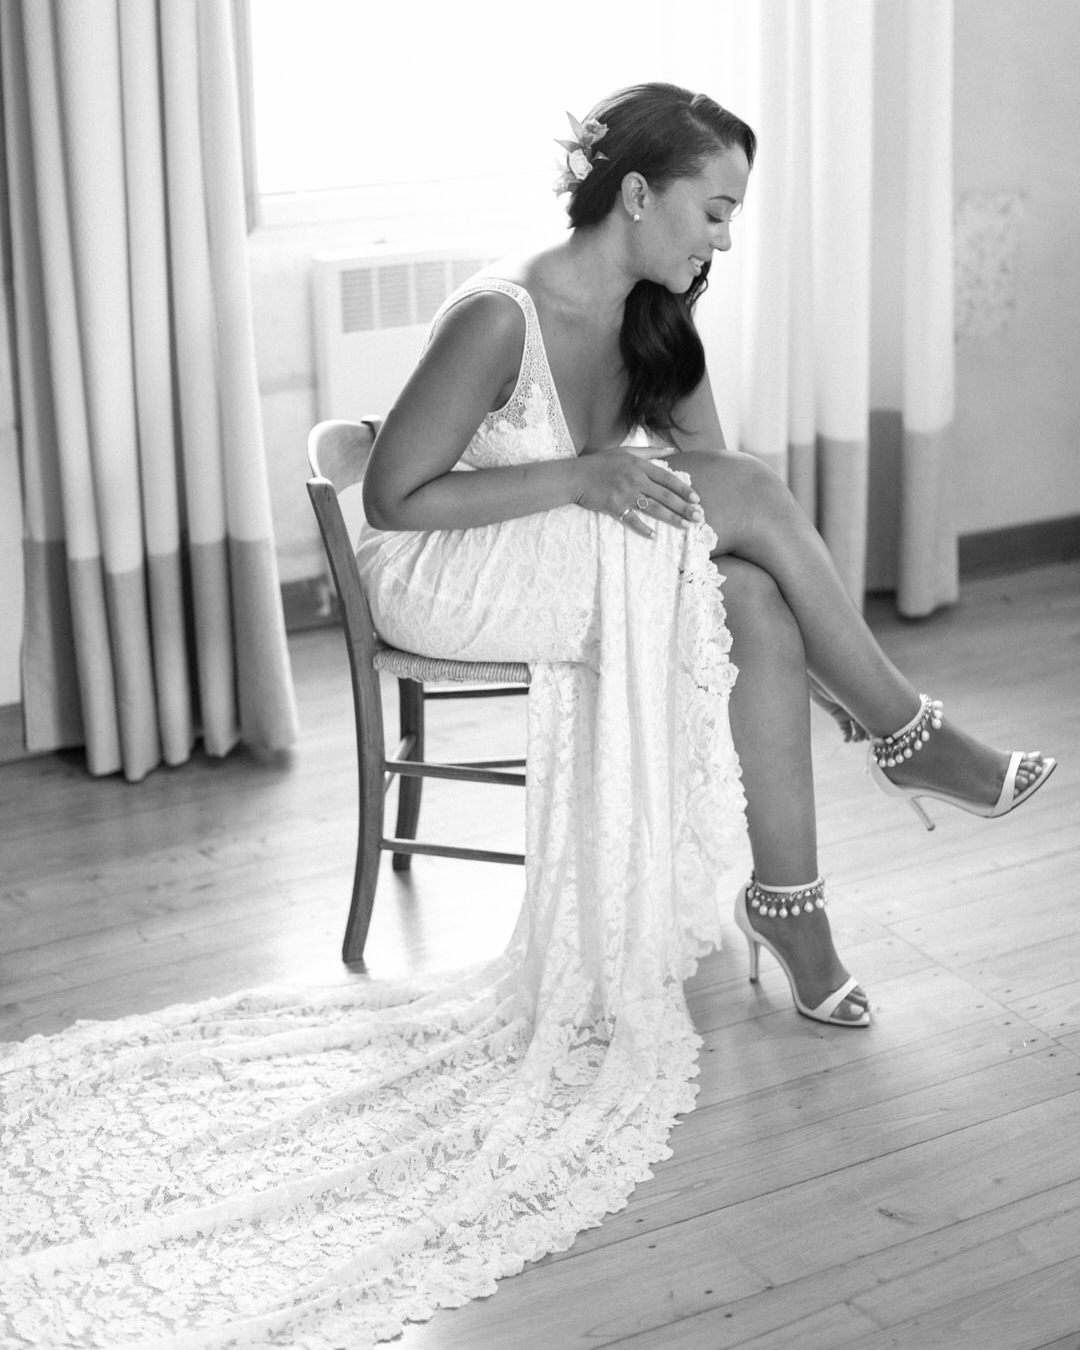 jen tim bride in wedding dress putting on shoes